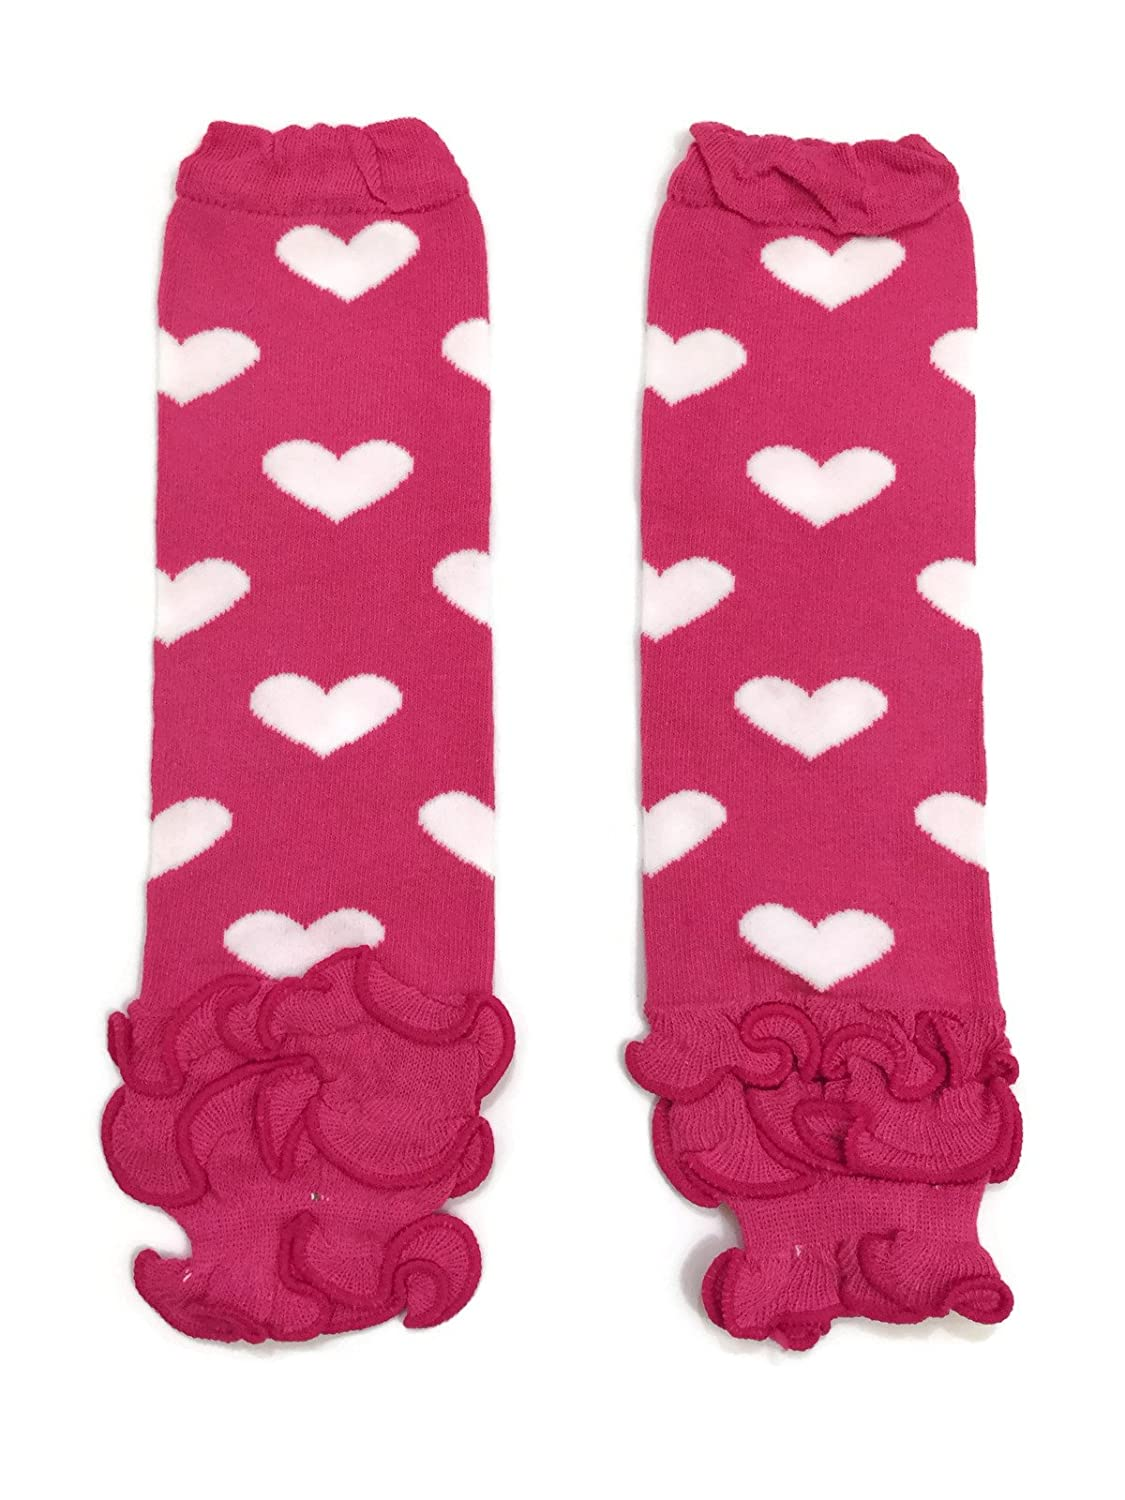 Rush Dance Valentine's Day Love Hearts Baby/Toddler Leg Warmers